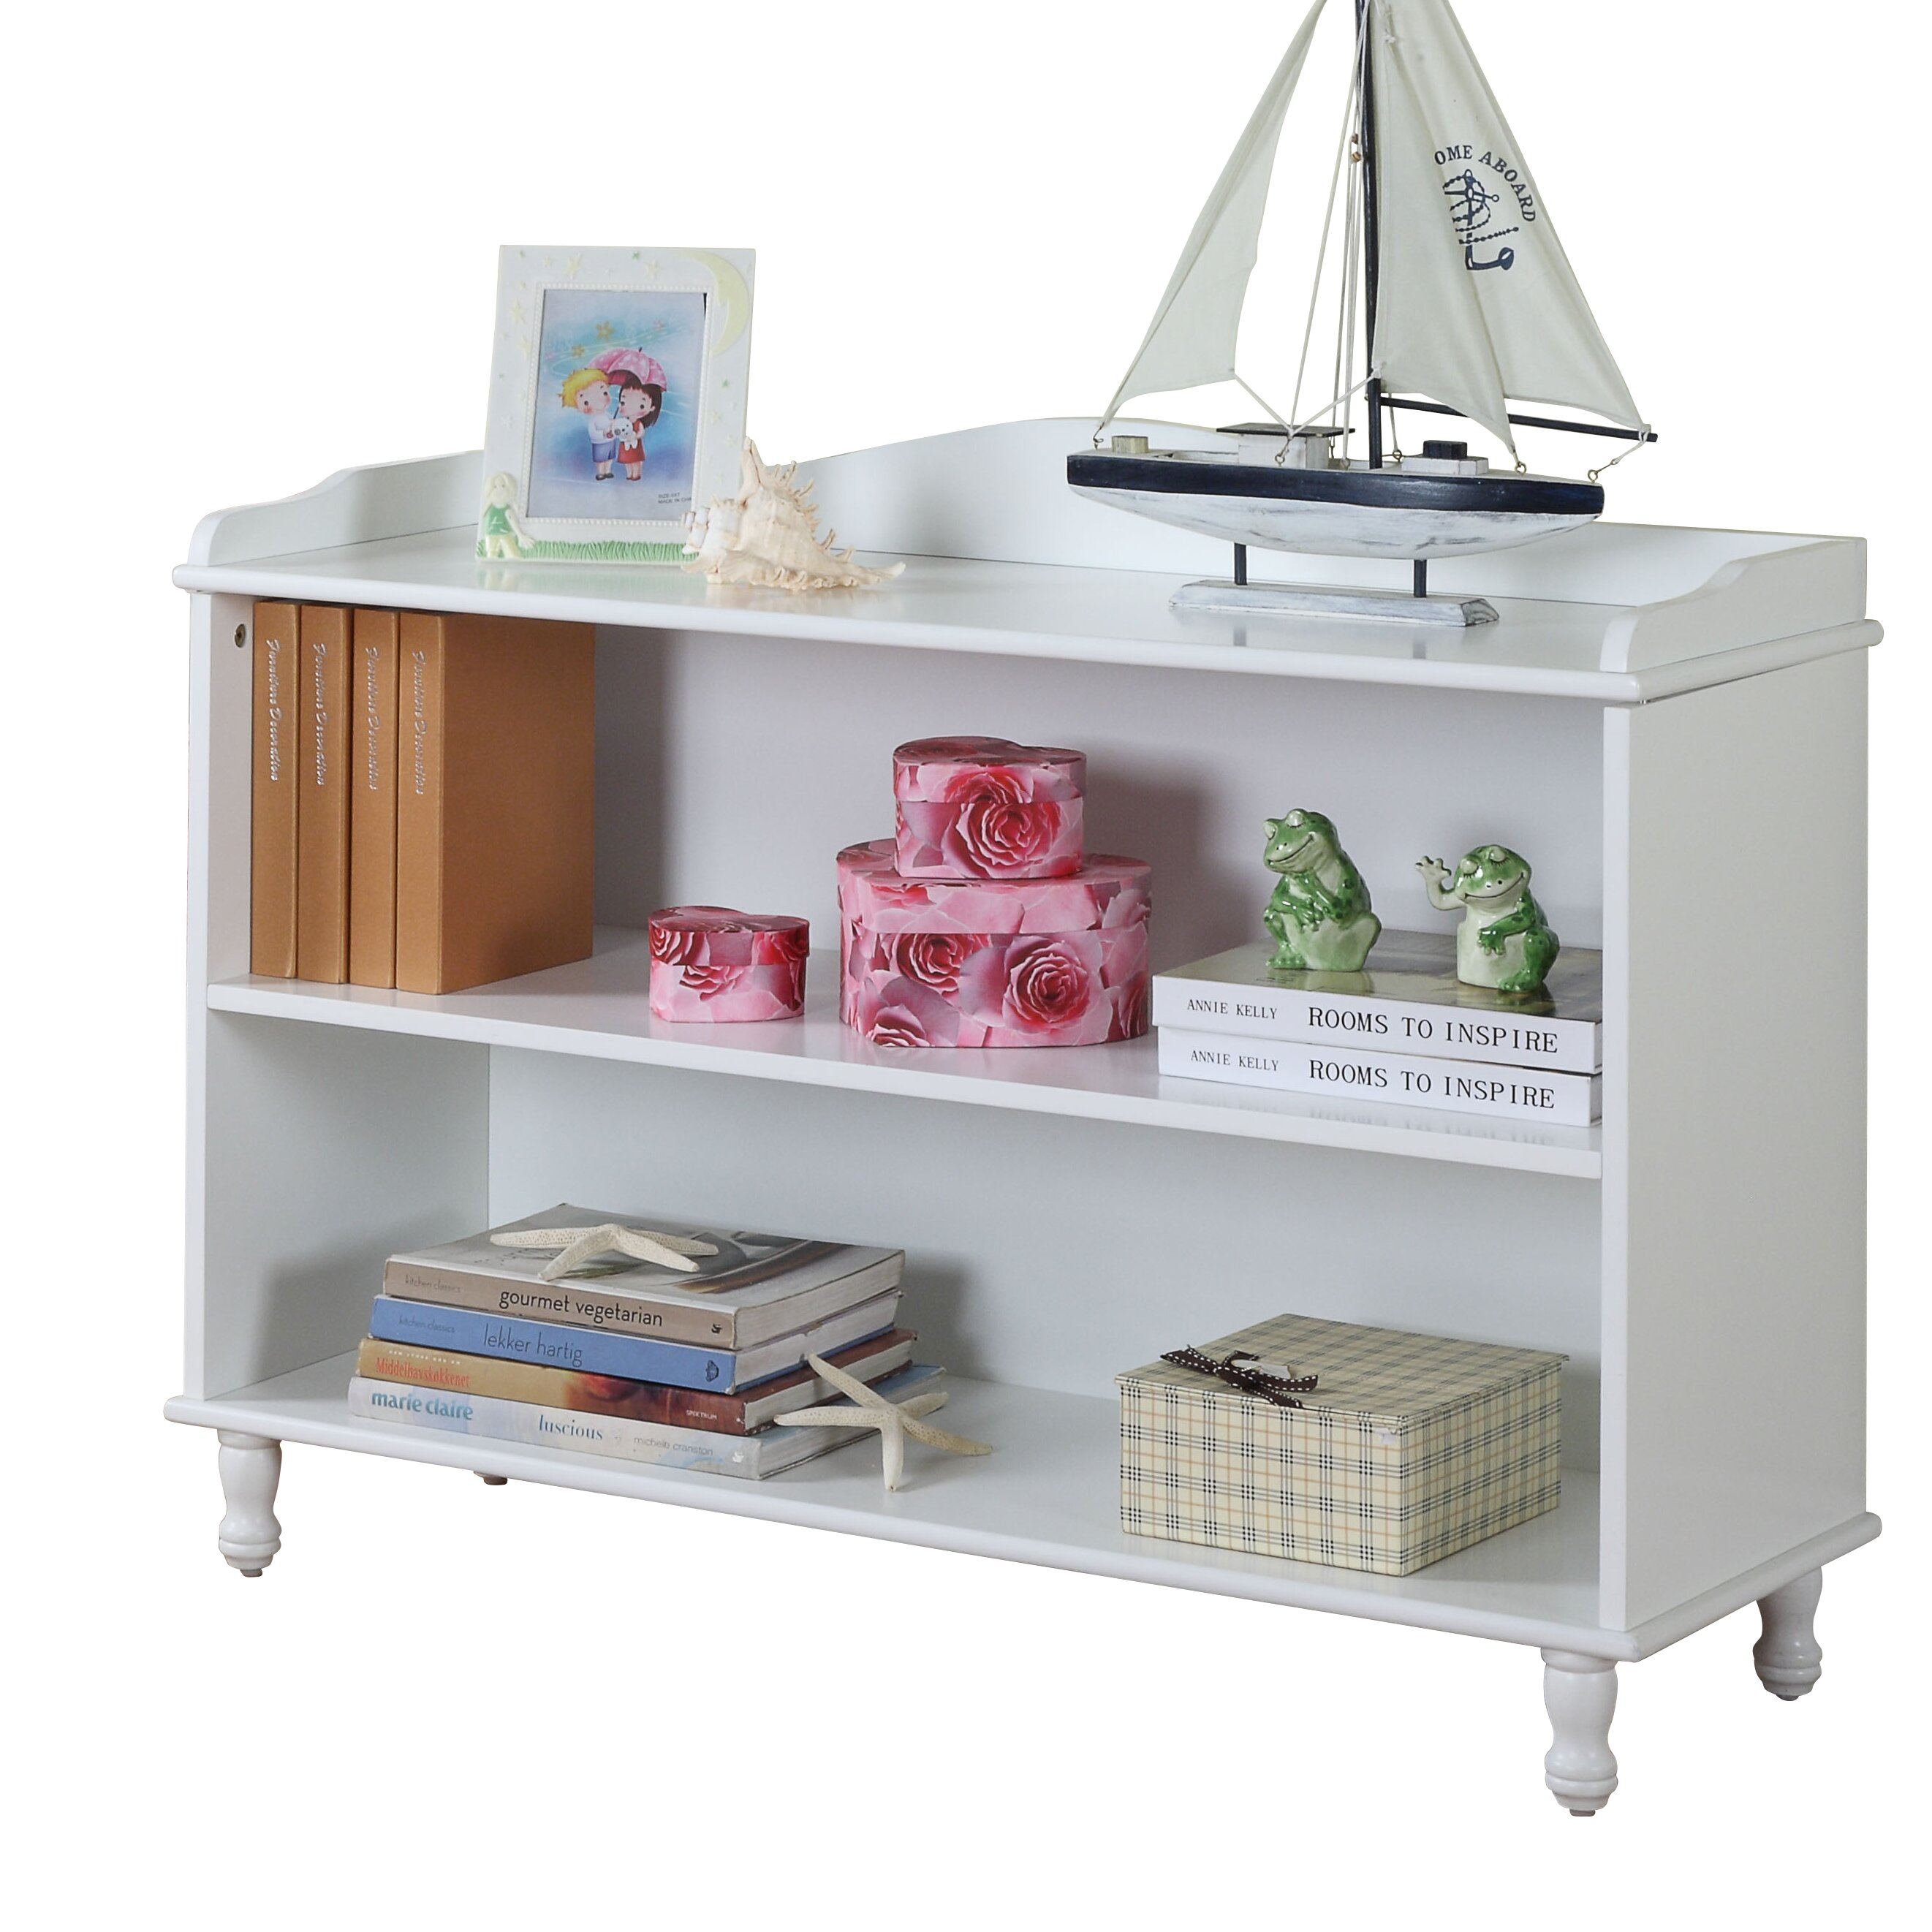 Inroom designs 30 bookcase reviews wayfair In room designs